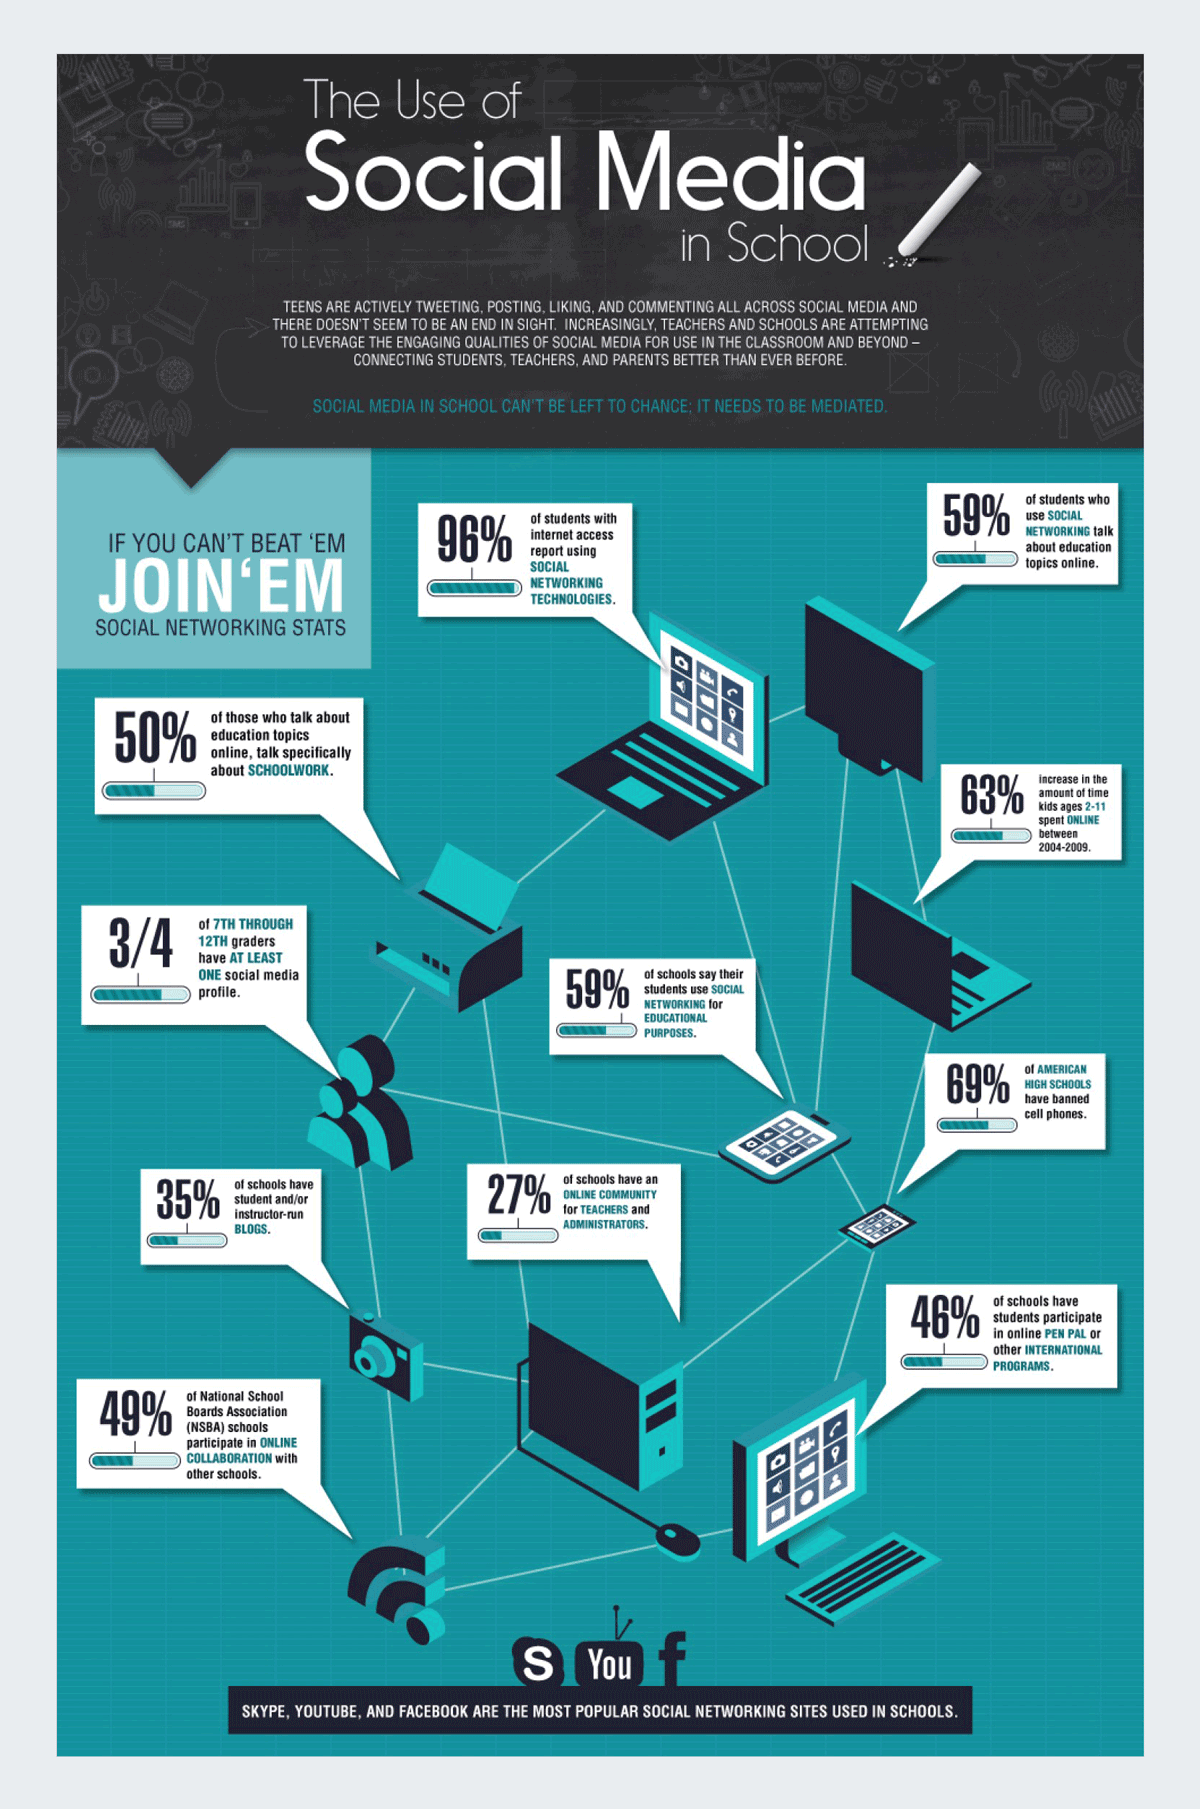 the-use-of-social-media-in-school-infographic-4